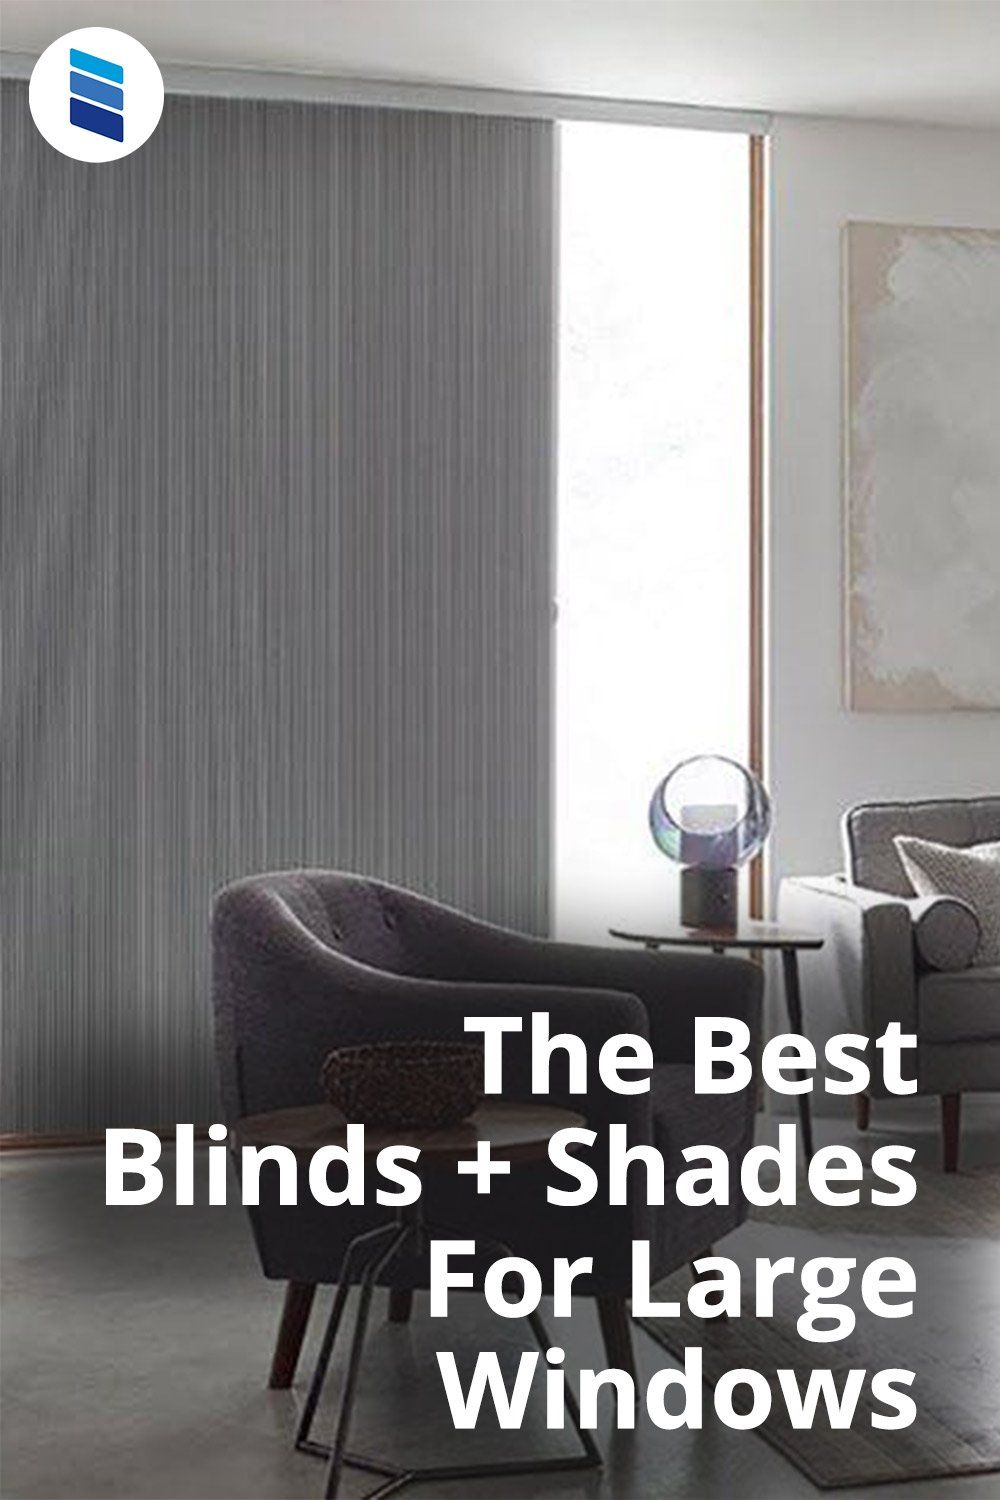 The Best Window Treatments For Large Windows Blinds Com In 2021 Best Blinds Large Windows Window Treatments